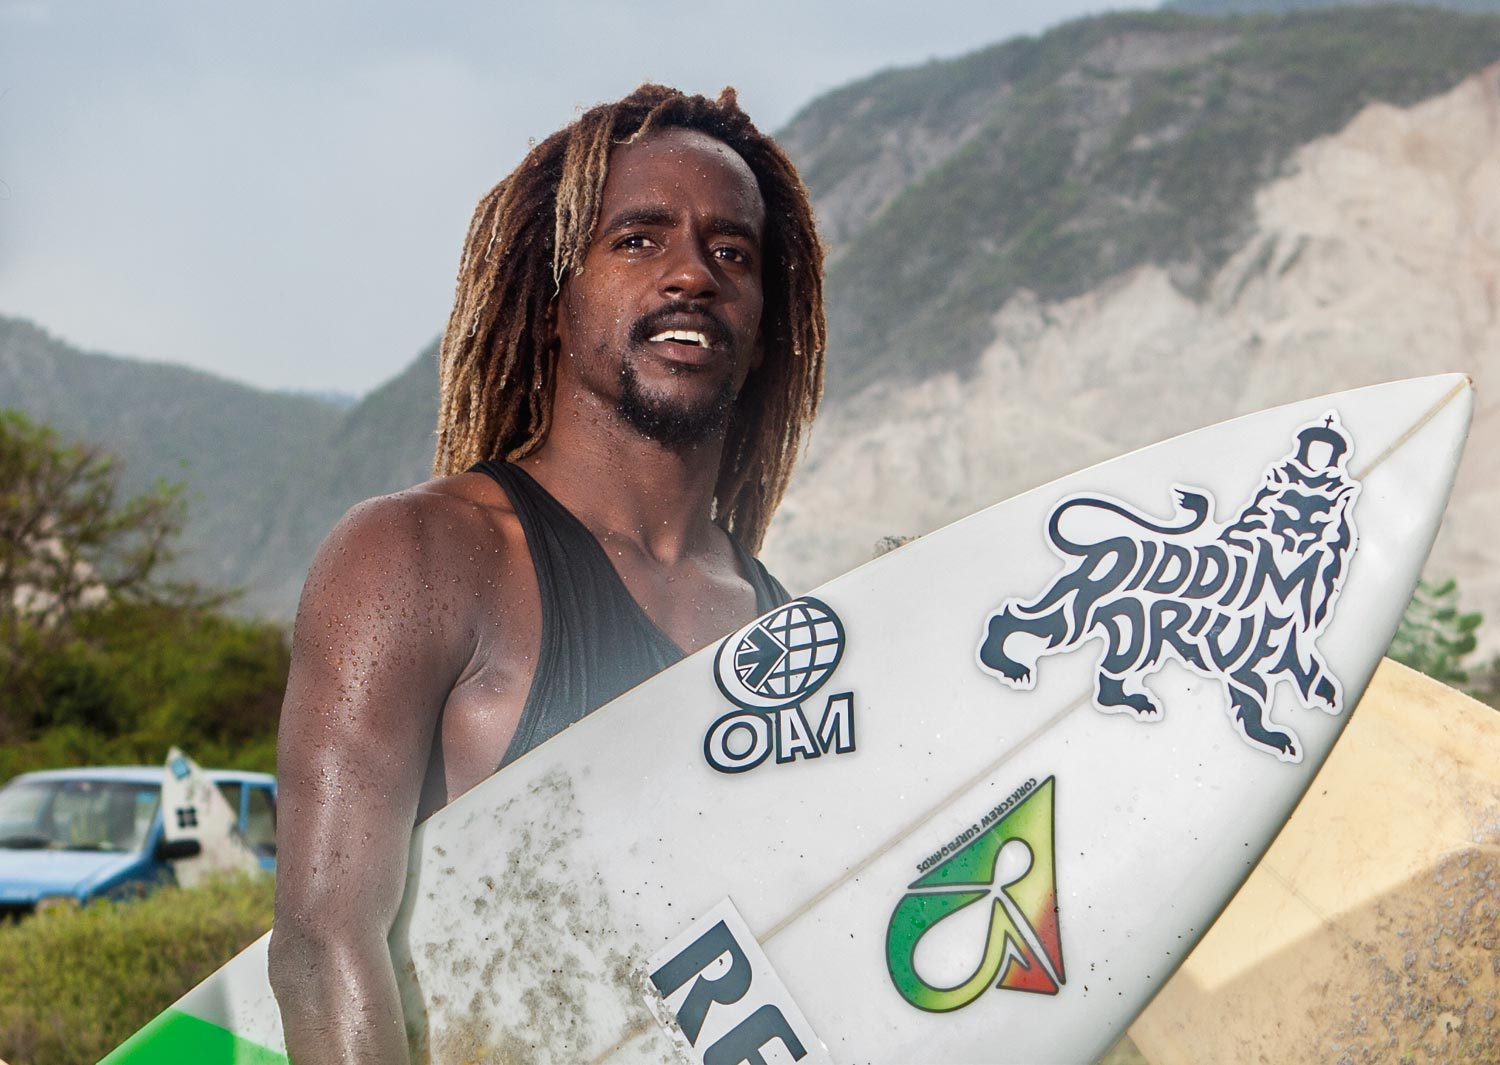 """Surfing is for everyone,"" says Icah Wilmot. Photography by Marlon James"